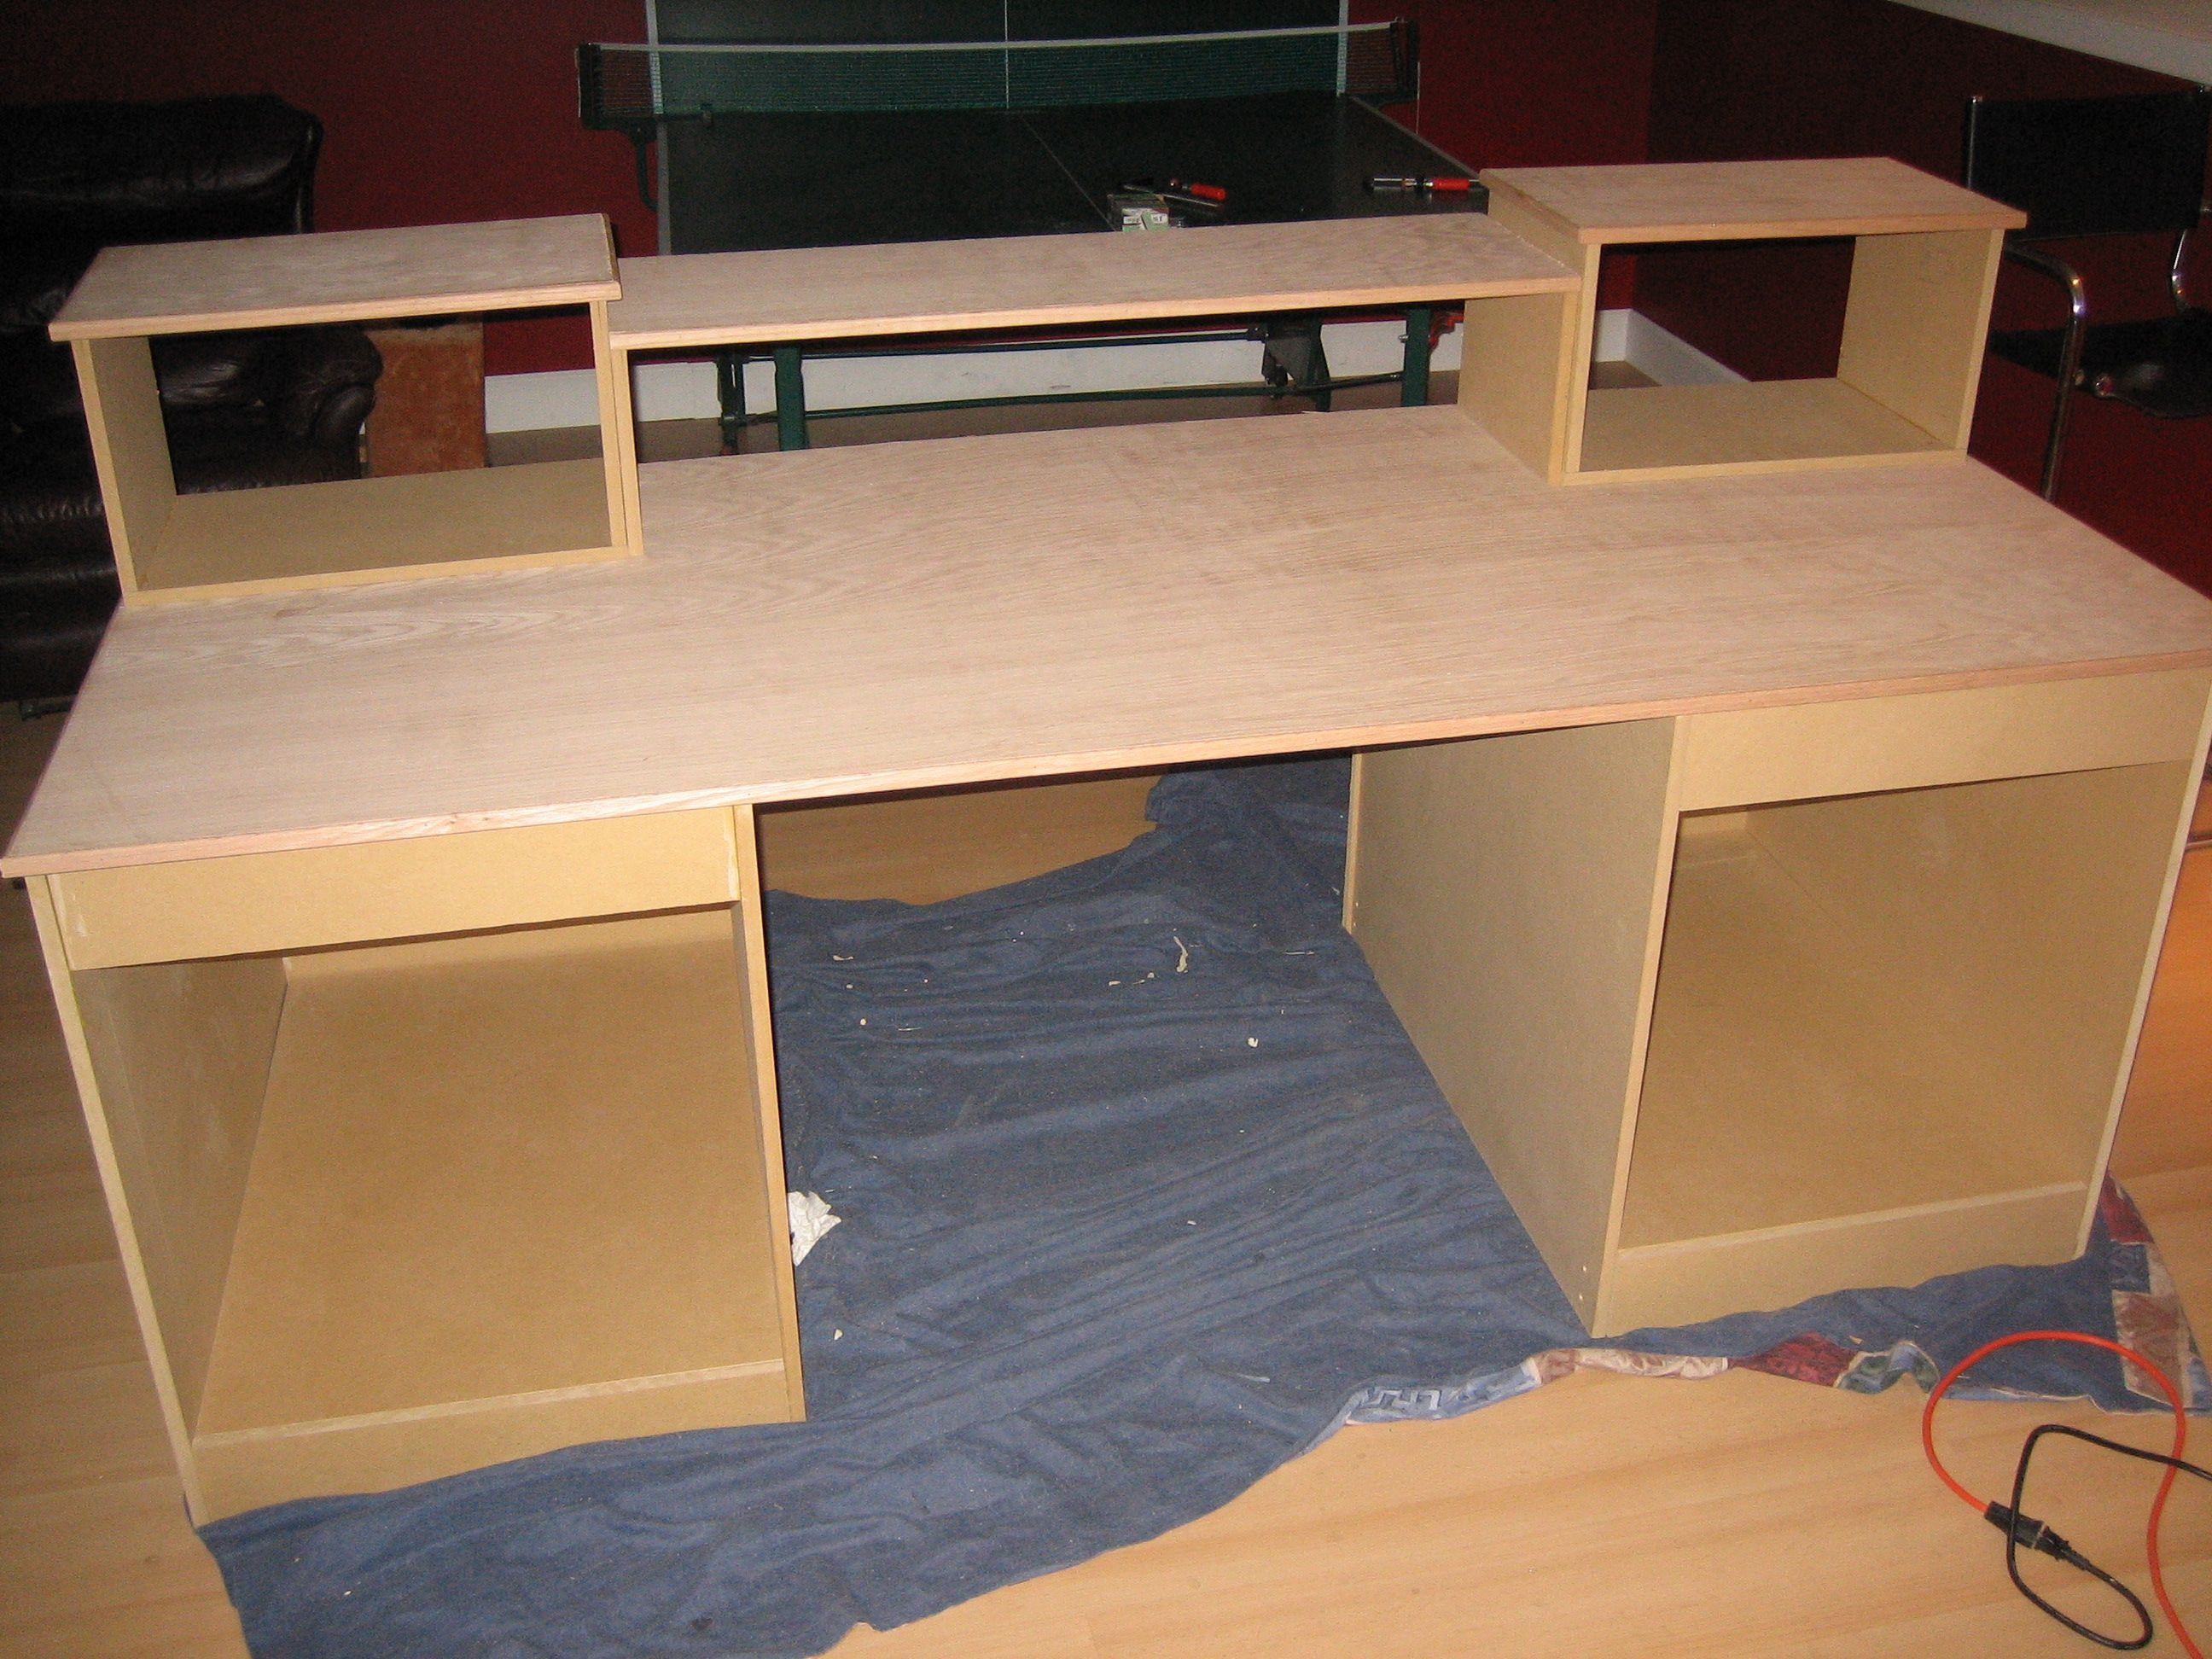 Building Your Own Diy Laptop Desk For A Home Office Can Offer You Additional Satisfaction And Spirit At Work Home Studio Desk Studio Desk Recording Studio Desk